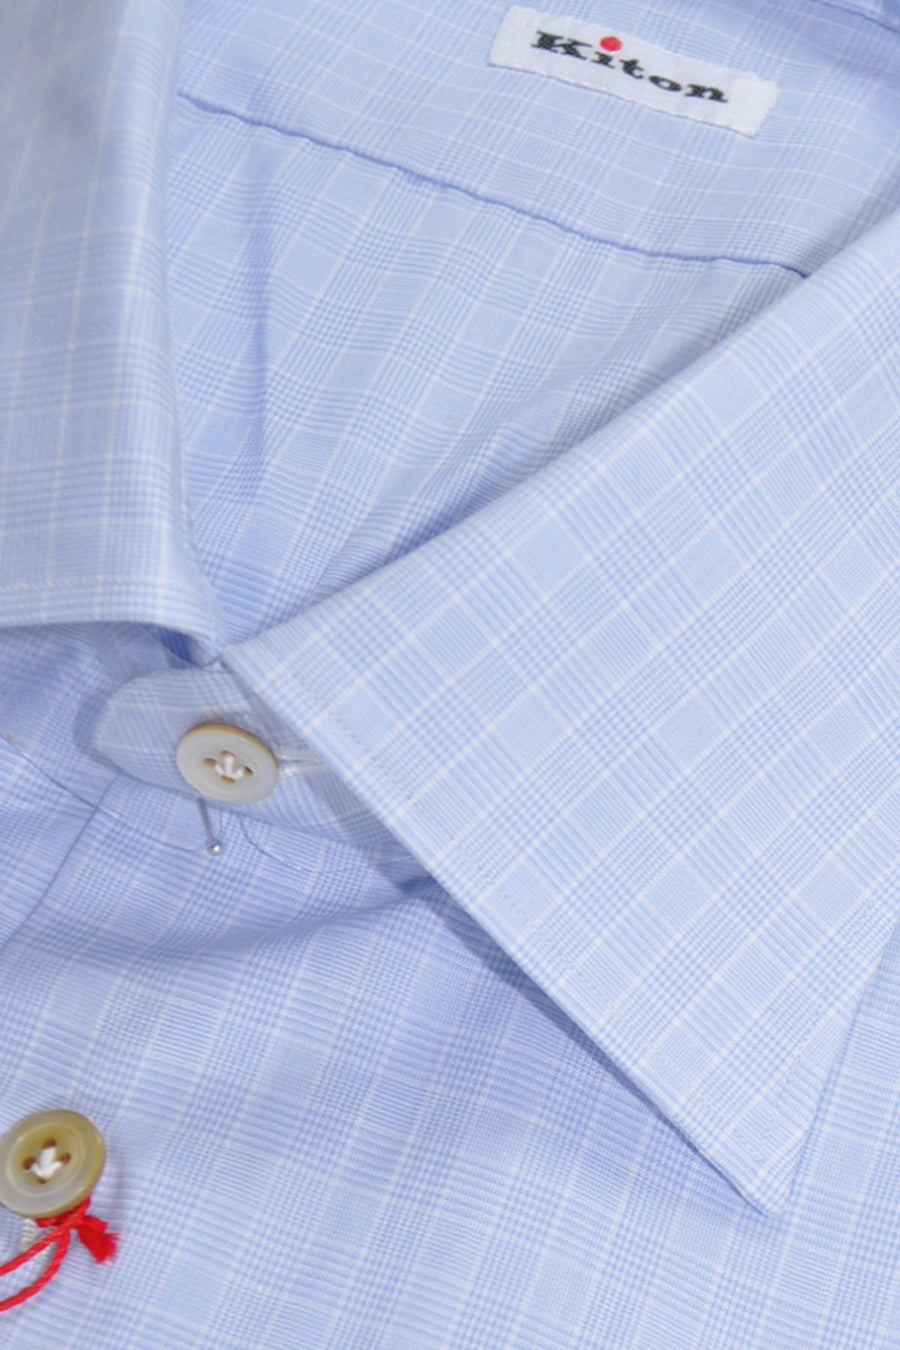 Kiton Dress Shirt Blue White Check 40 - 15 3/4